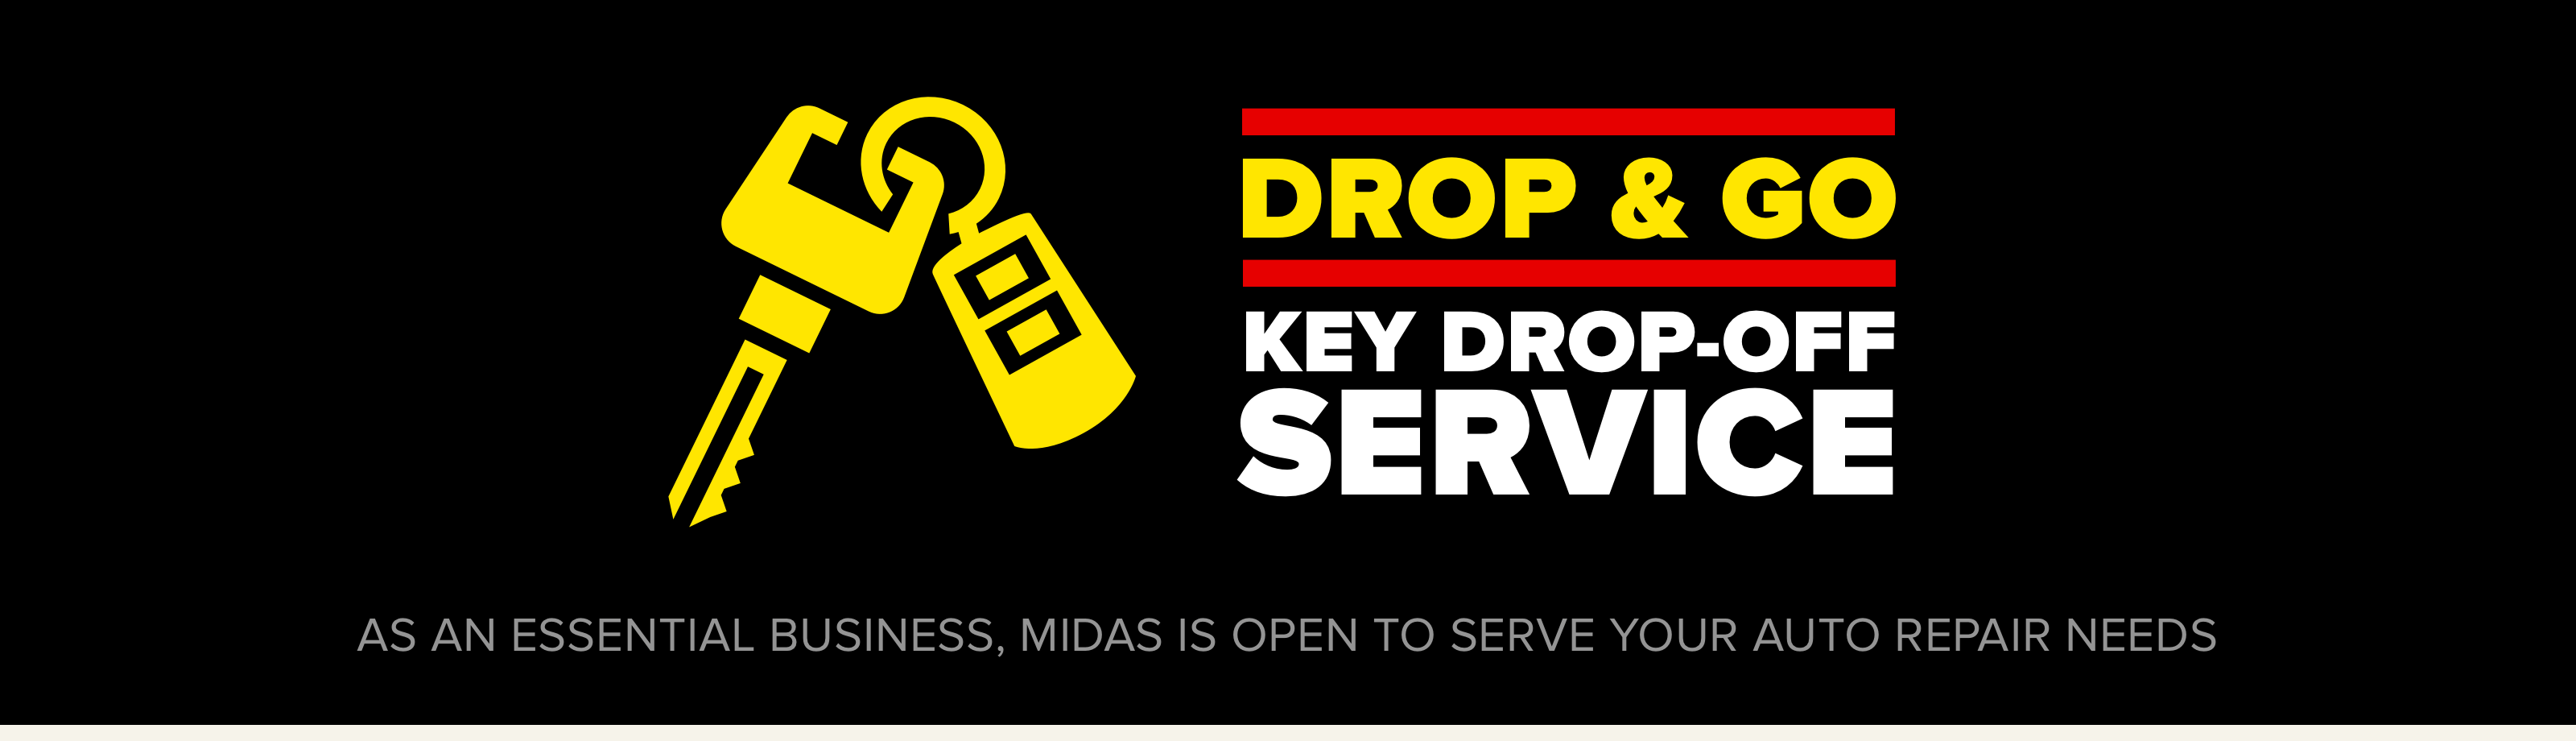 Drop & go key drop-off service. As an essential business, Midas is open to serve your auto repair needs.